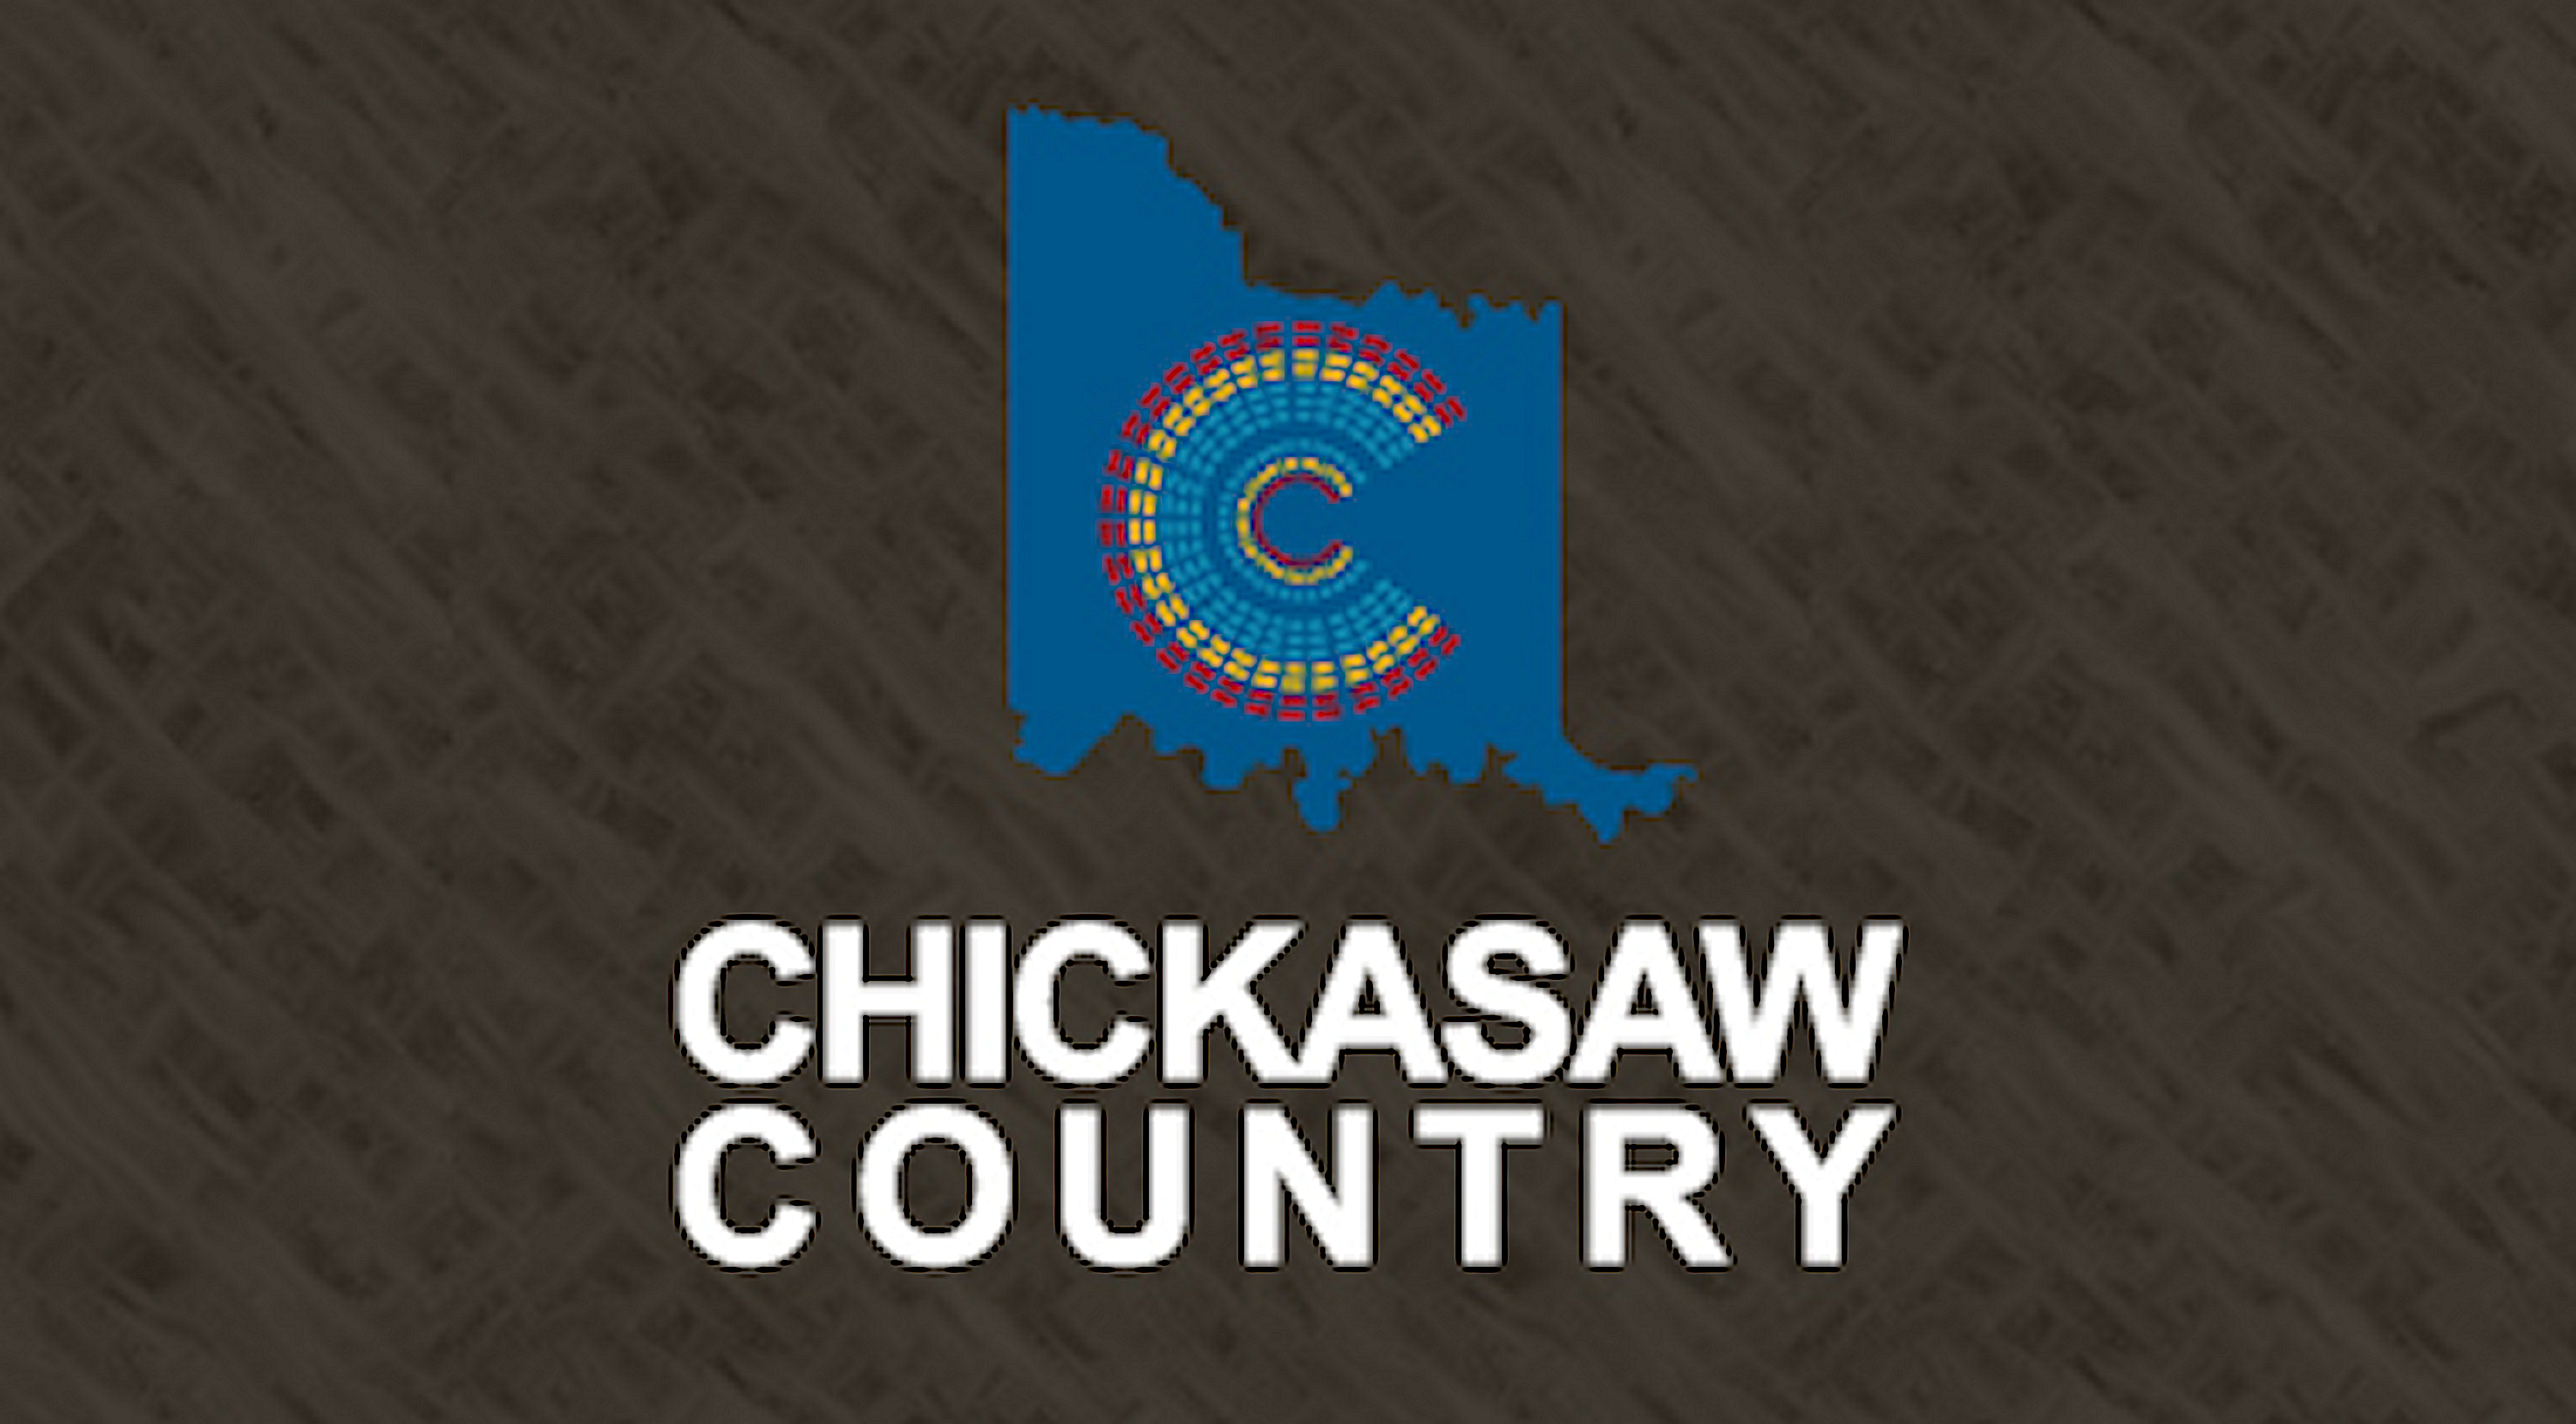 Chickaswa Country